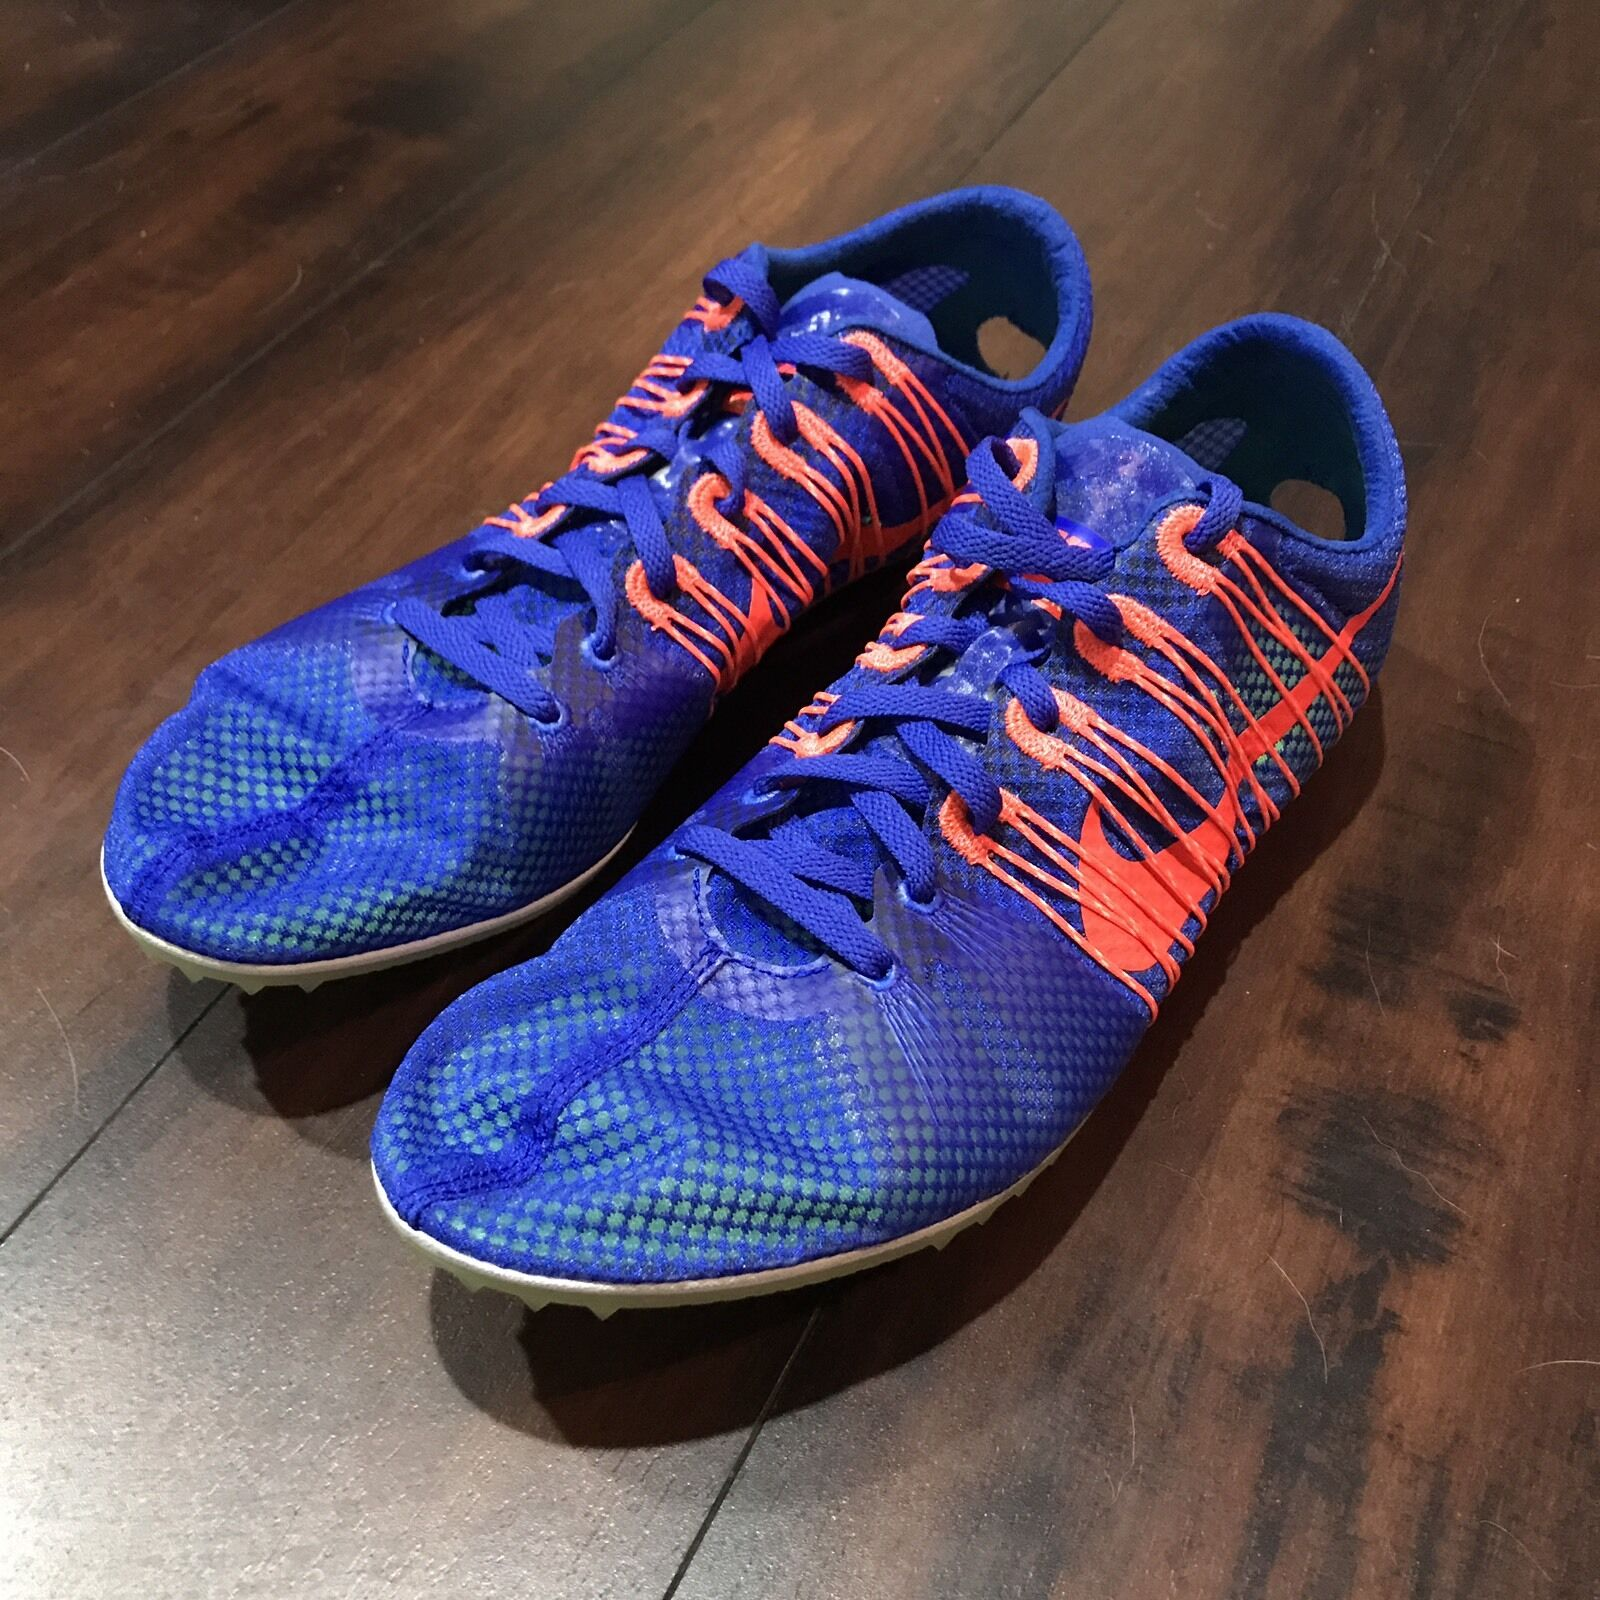 Nike Zoom Victory 2 Flywire Track Spikes Comfortable The most popular shoes for men and women